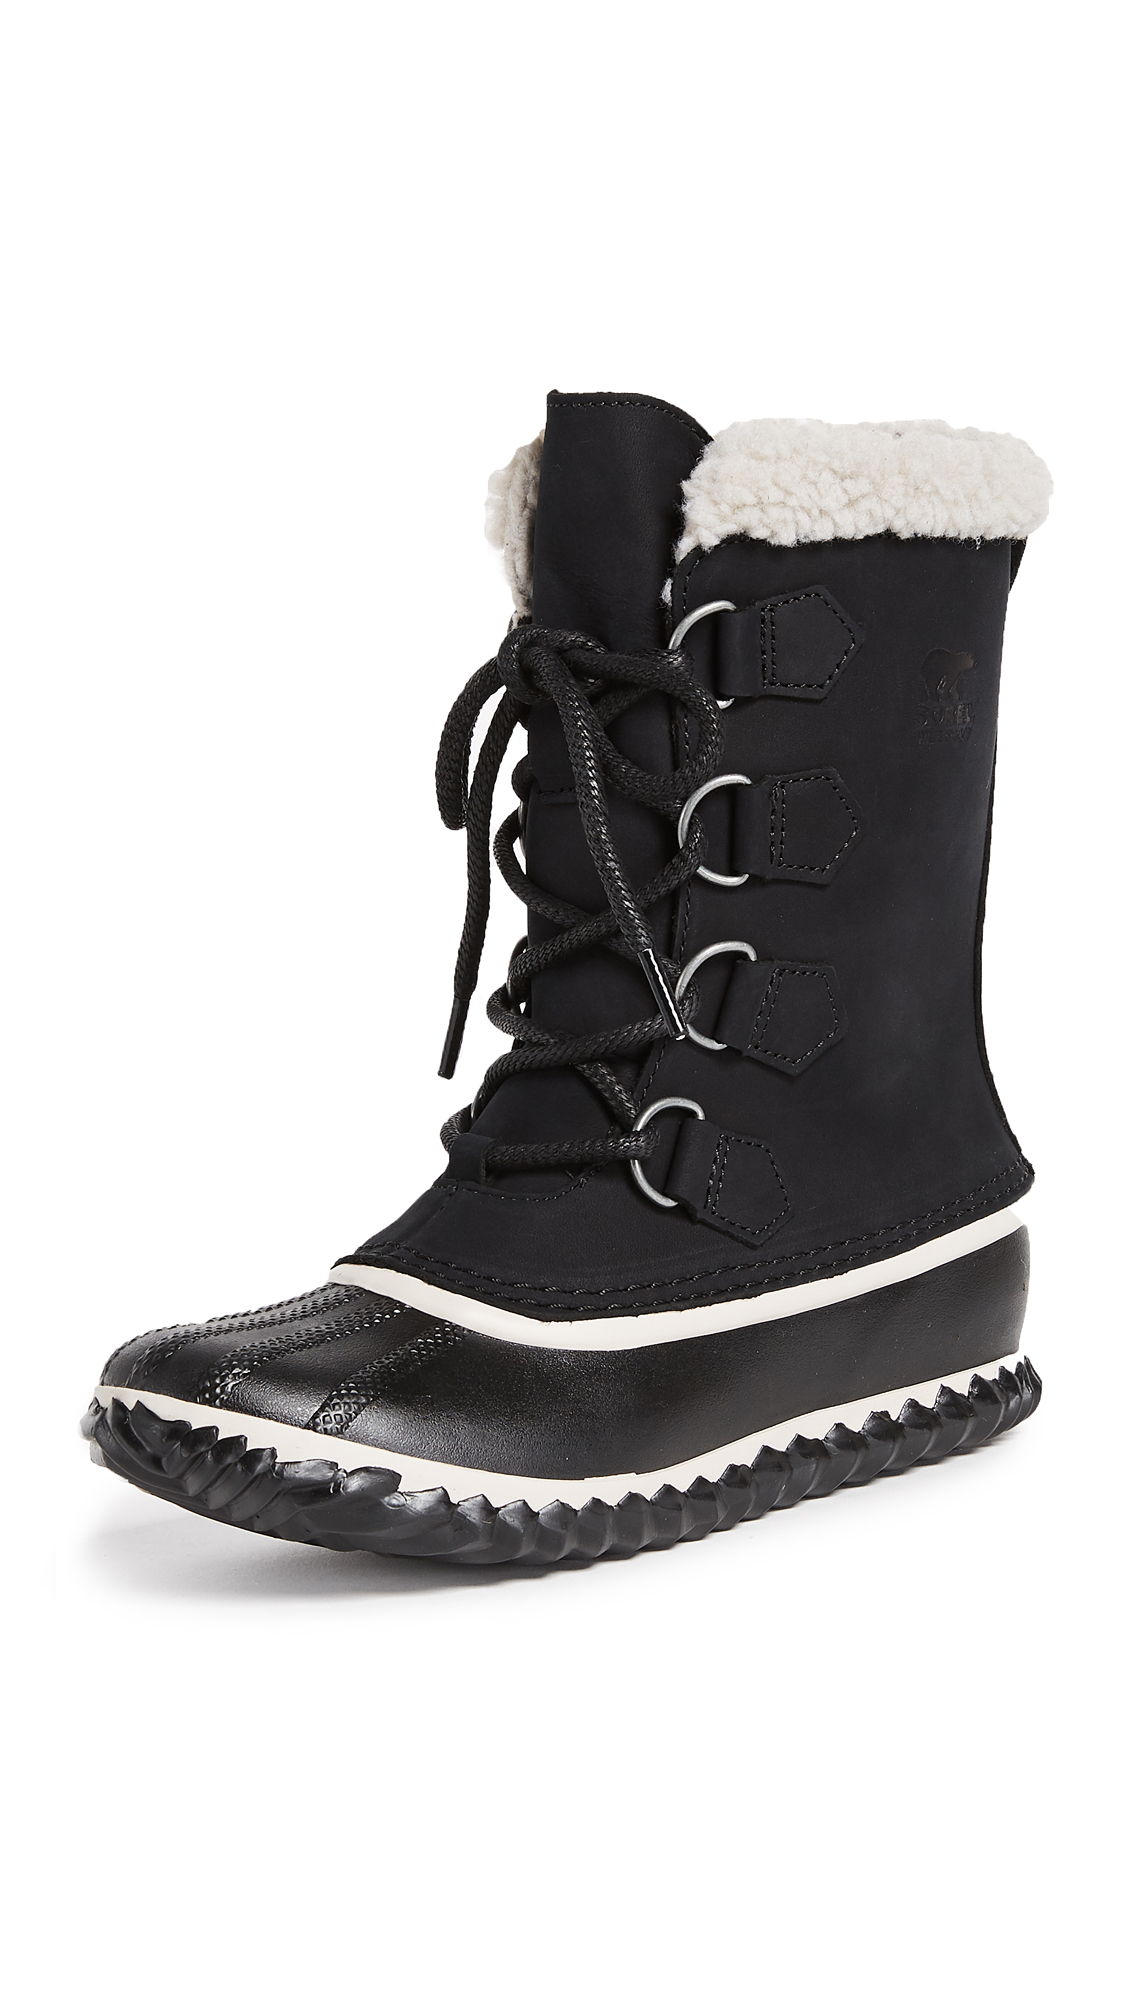 Sorel Caribou Slim Boots - Black